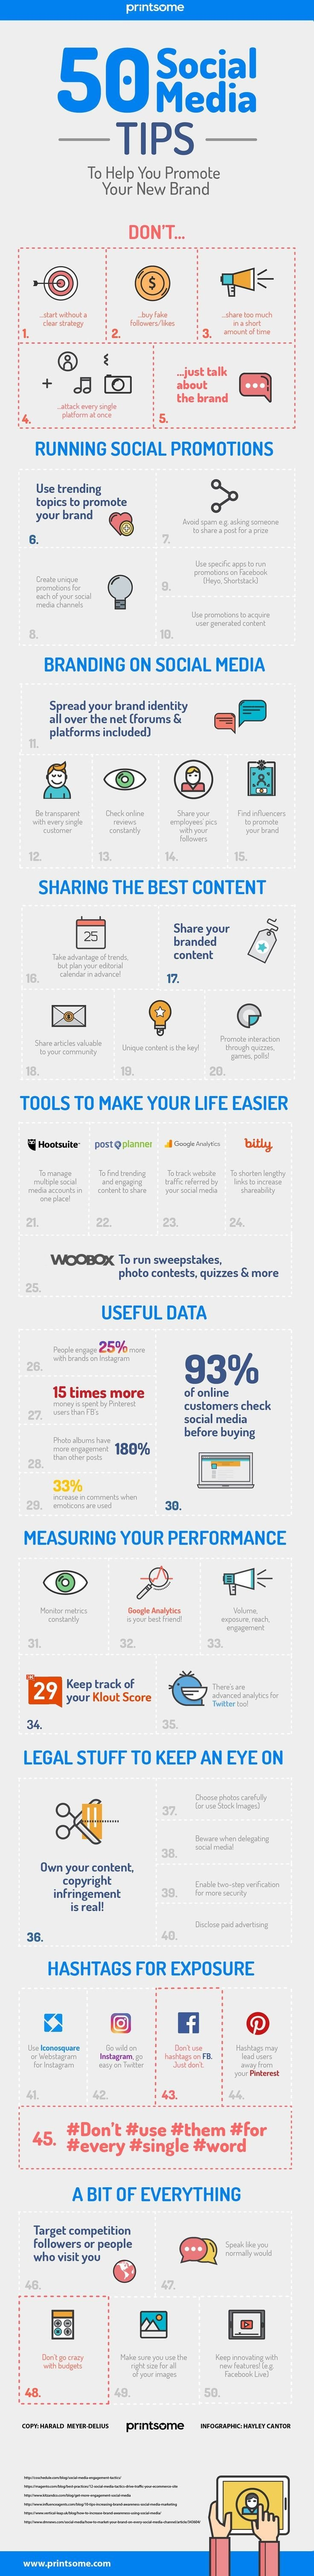 Fifty #Social_Media tips to promote your new brand #SMM #Marketing #Infographic